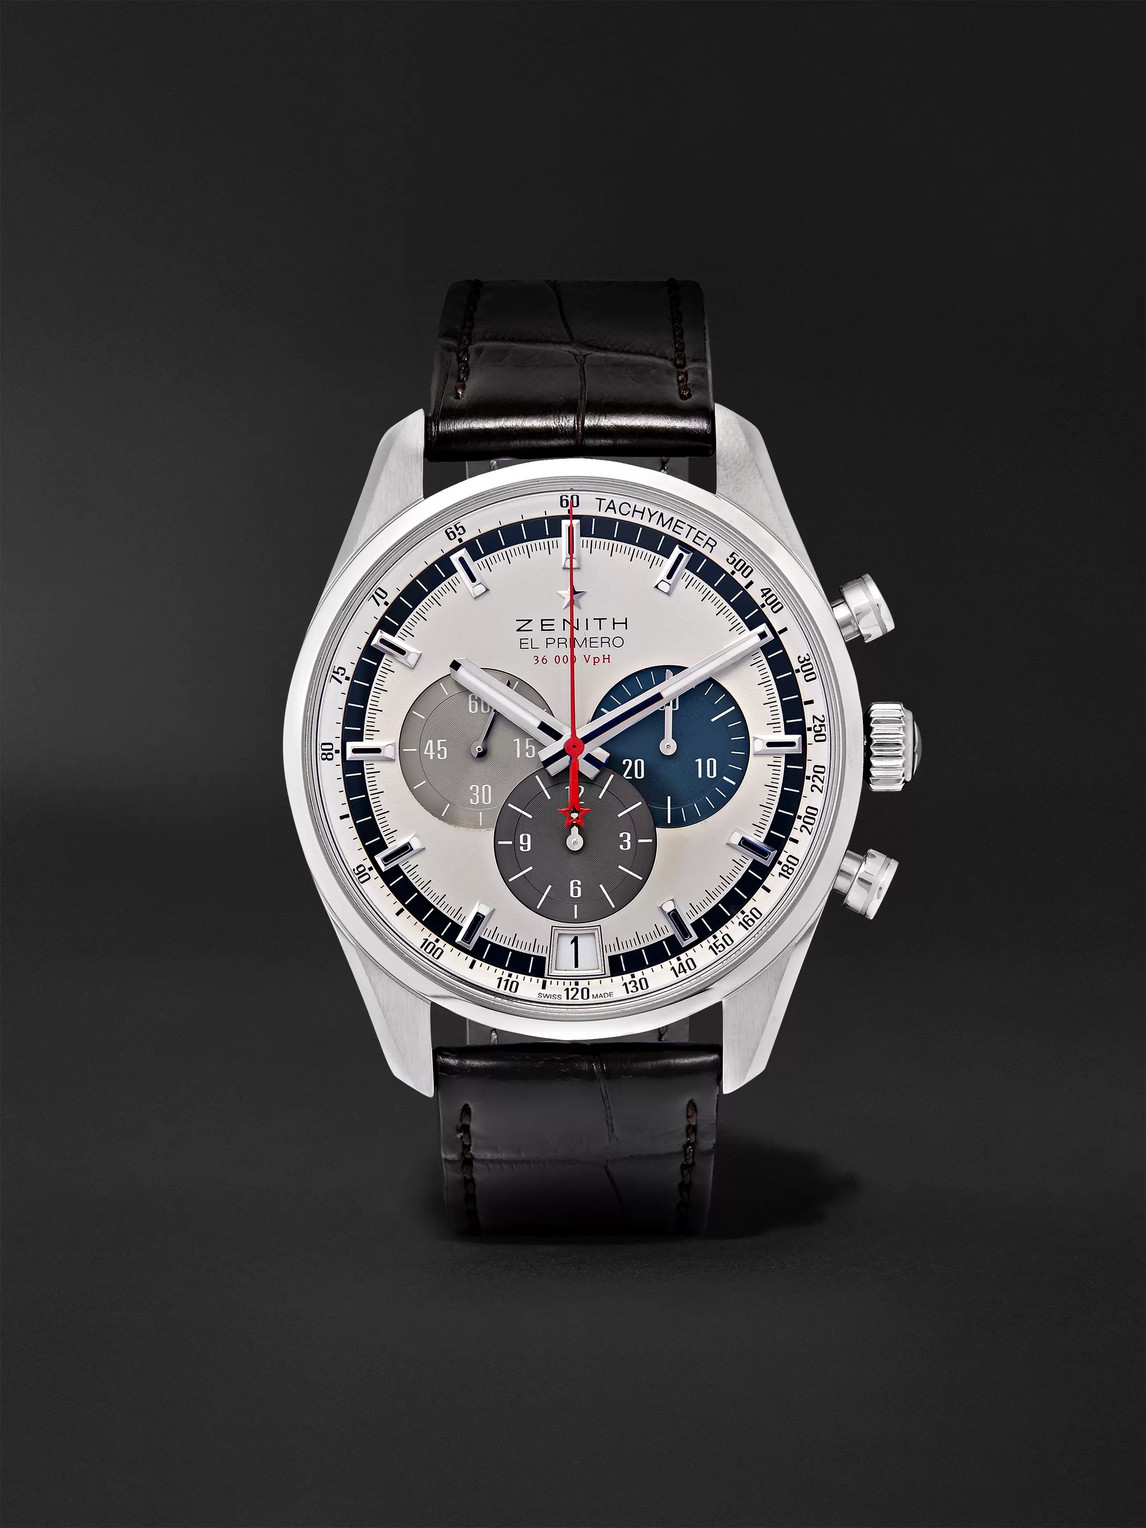 Zenith El Primero Automatic 42mm Stainless Steel And Alligator Watch, Ref. No. 03.2040.400/69.c494 In White